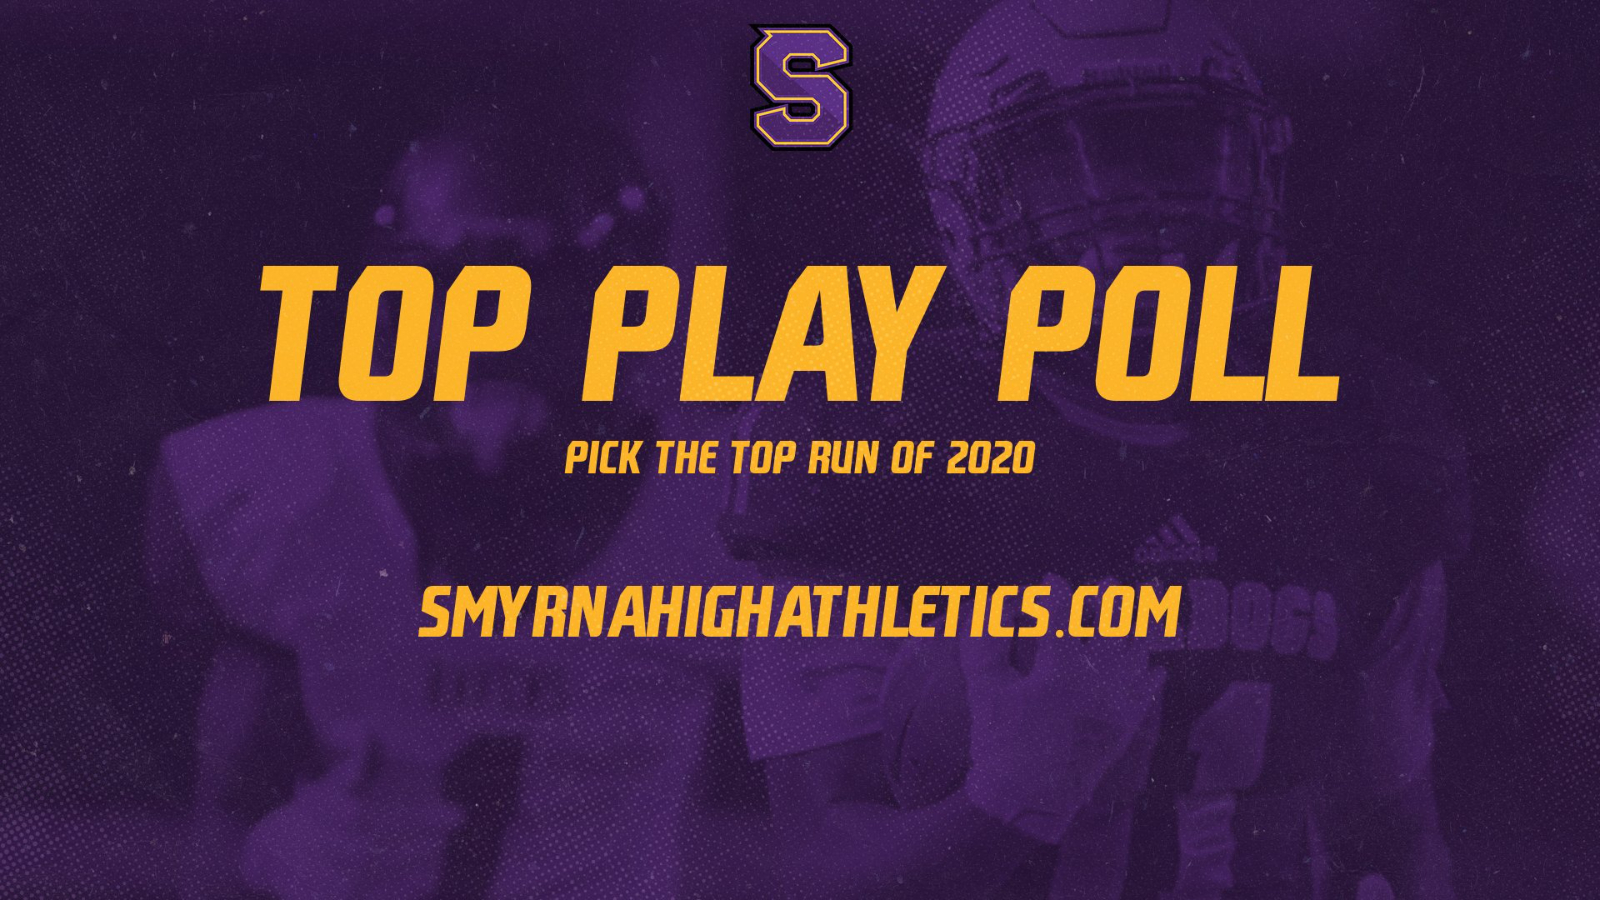 Pick the top run play of 2020